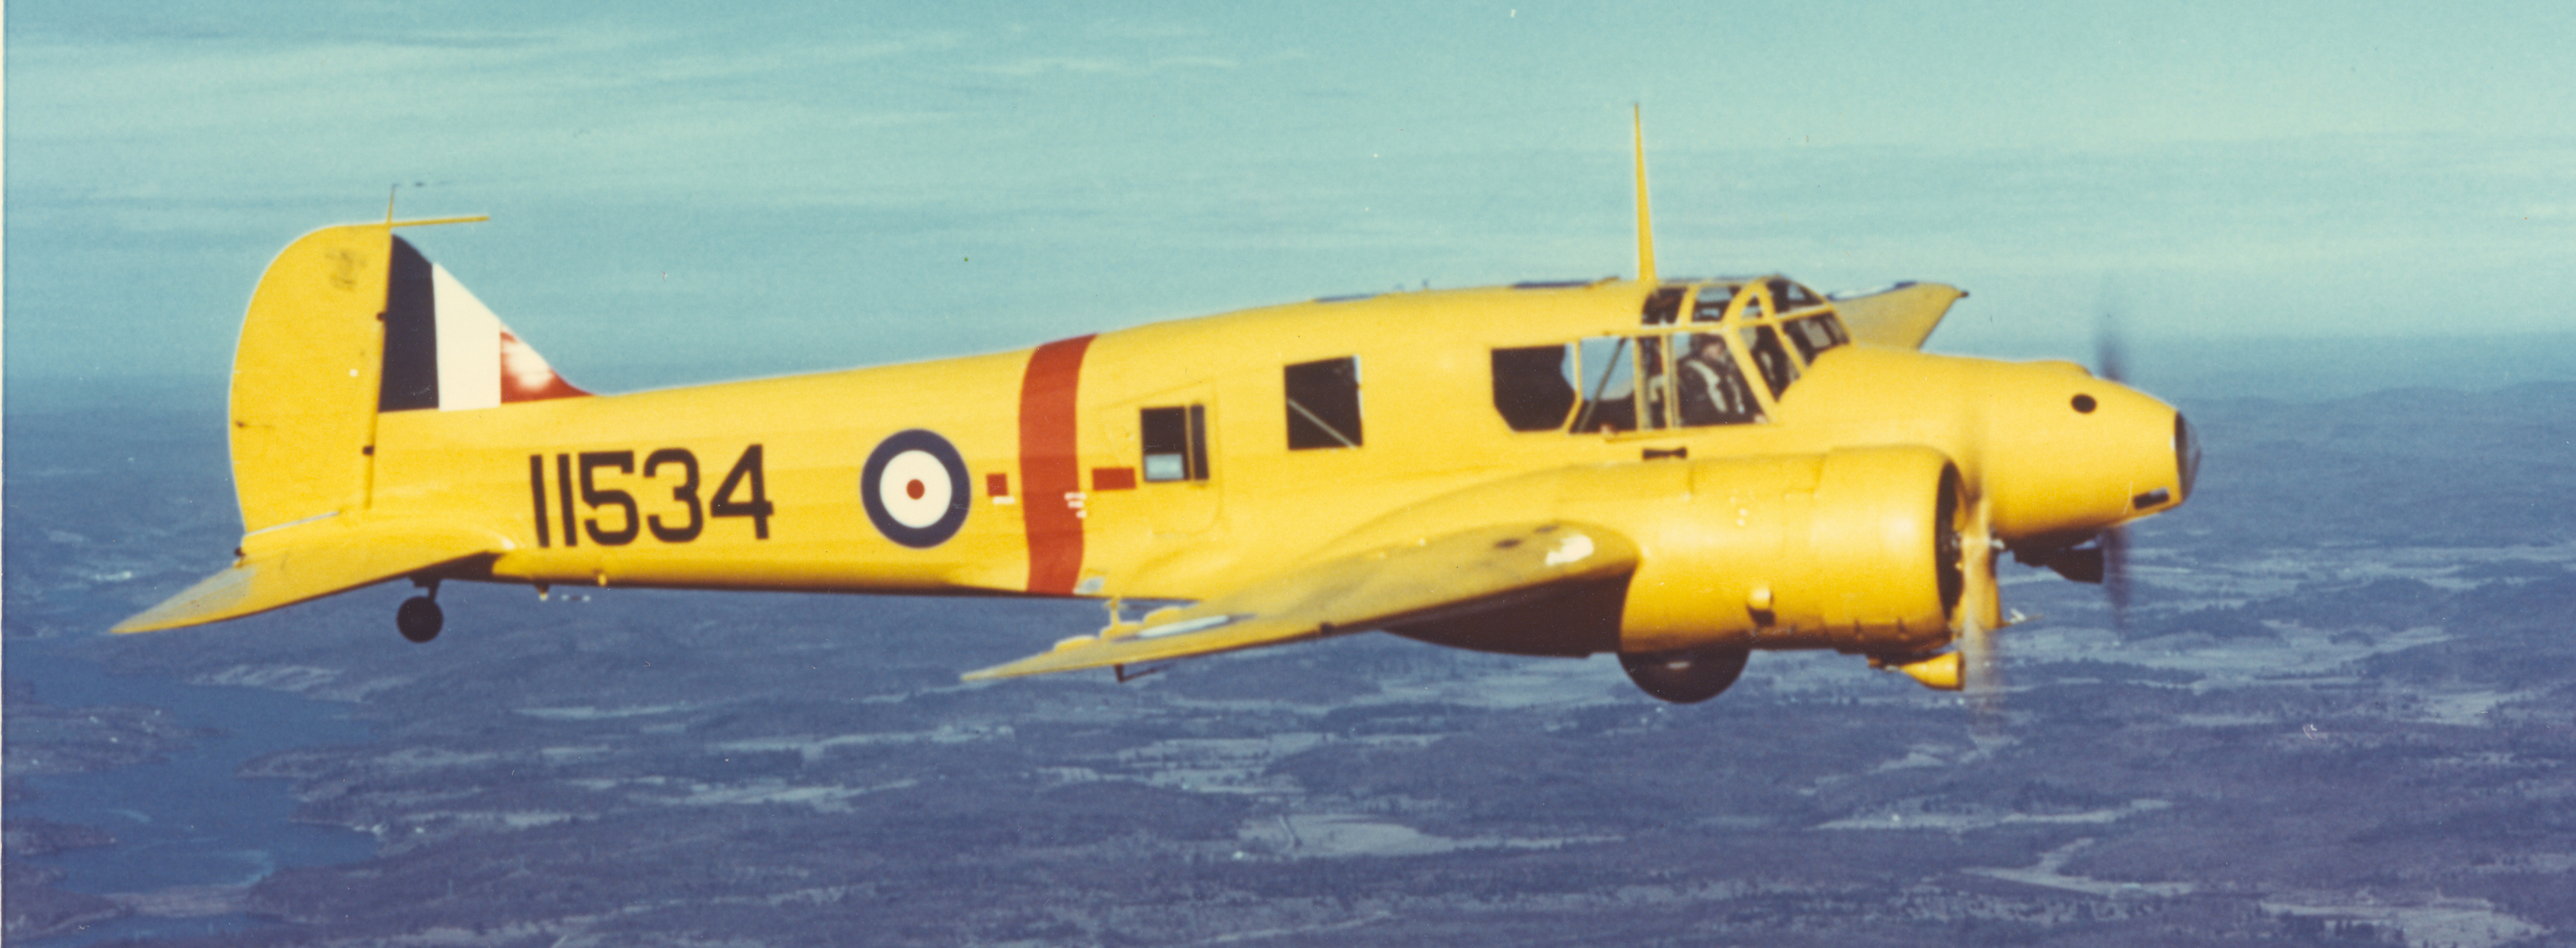 An early model Royal Canadian Air Force Anson as used in the British Commonwealth Air Training Plan. The yellow overall finish, which denoted training aircraft, was typical of many BCATP aircraft. PHOTO: Courtesy T.F.J. Leversedge